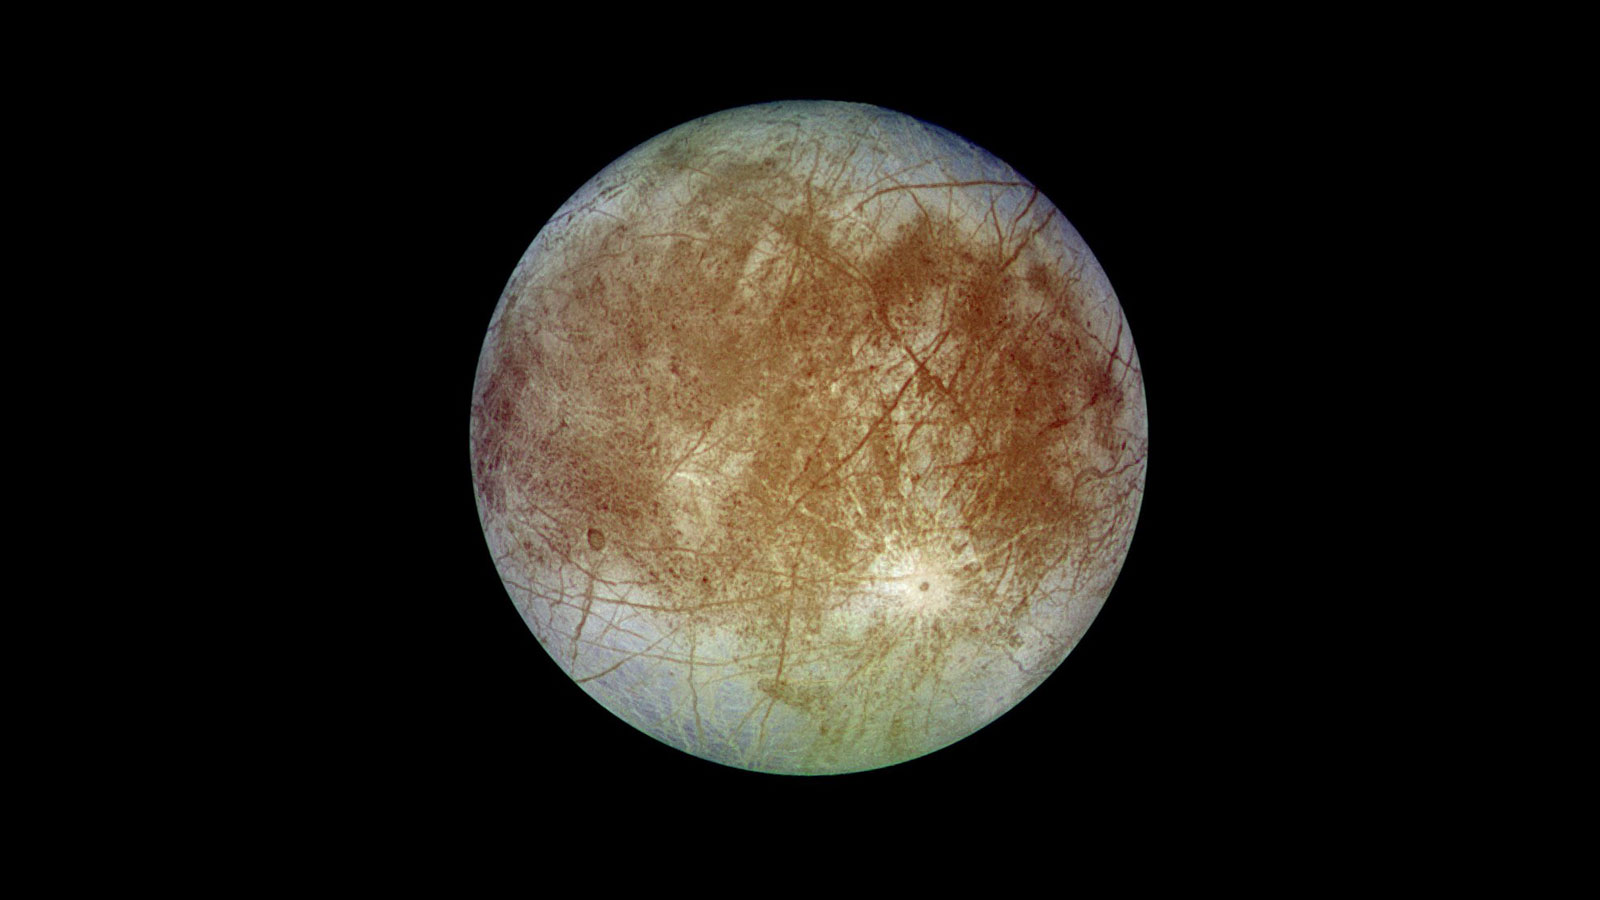 Europa Facts